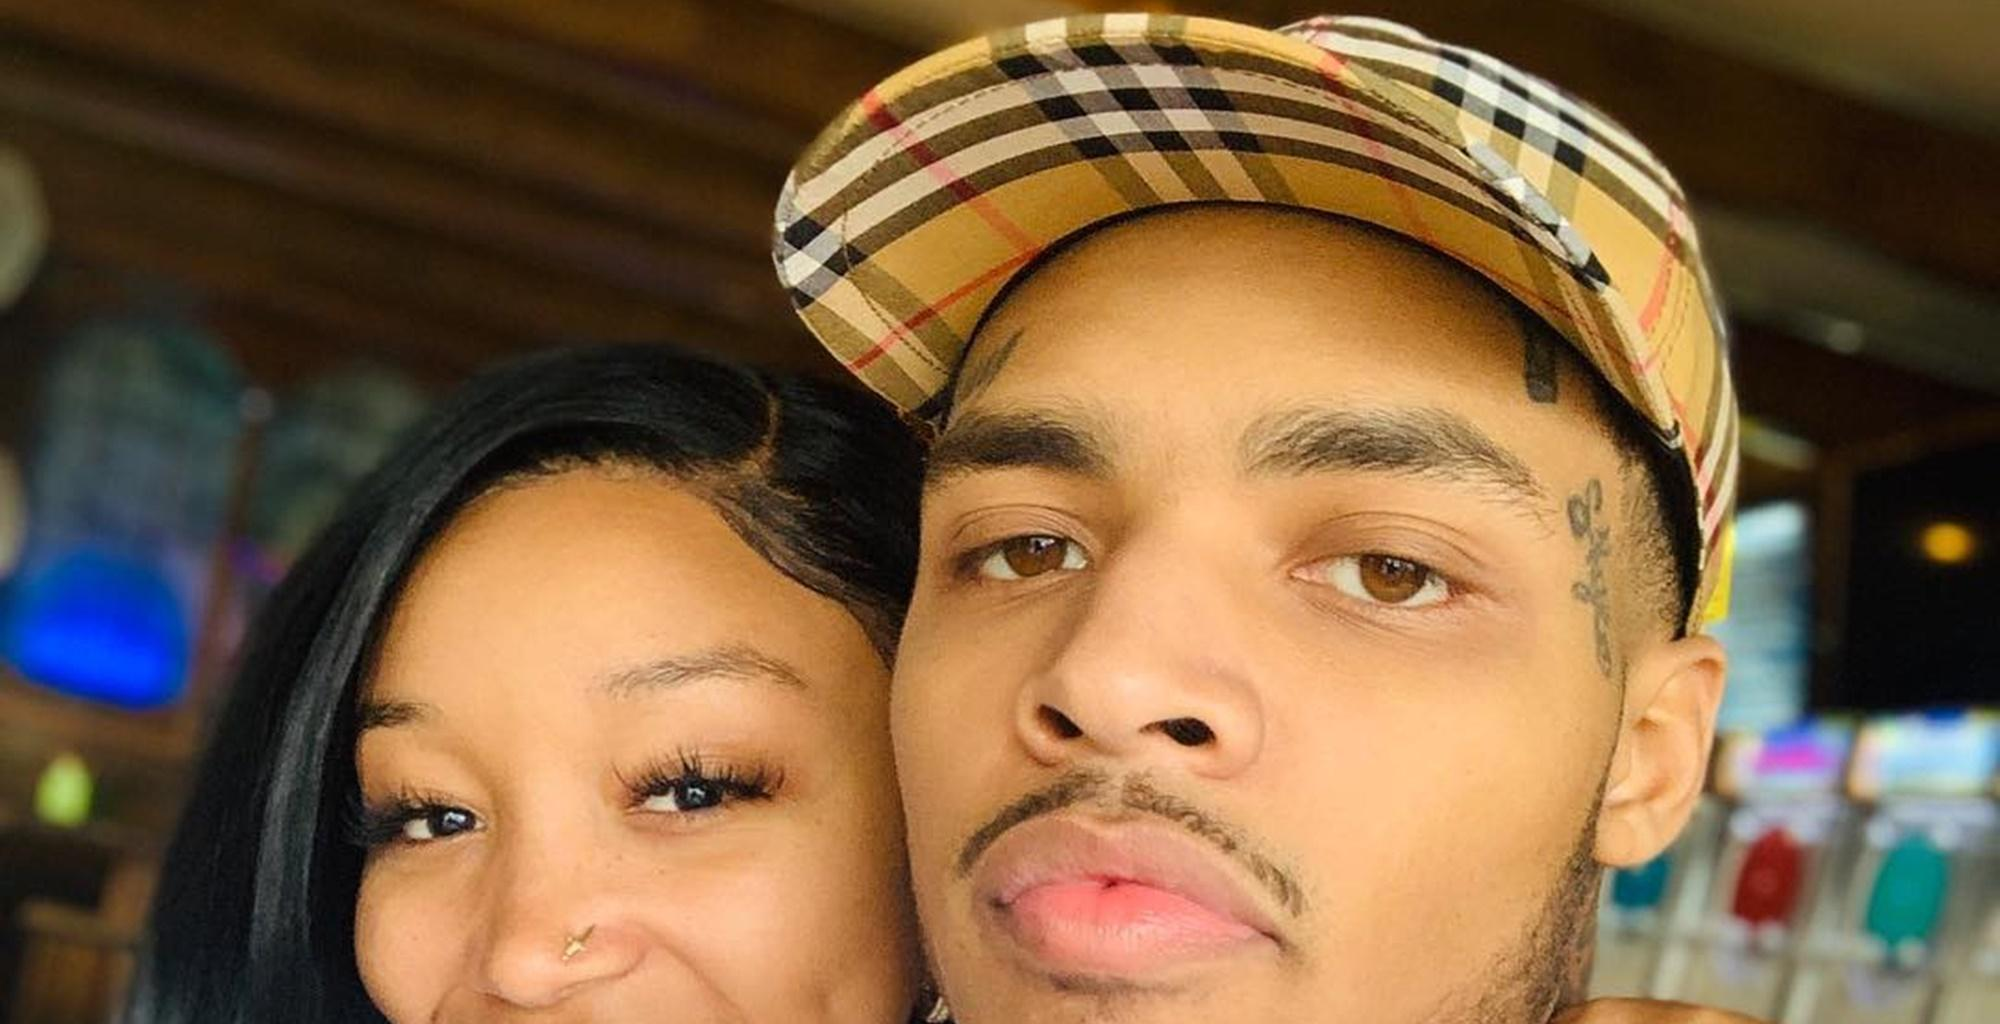 Zonnique Pullins Poses With Her Boyfriend, Bandhunta Izzy